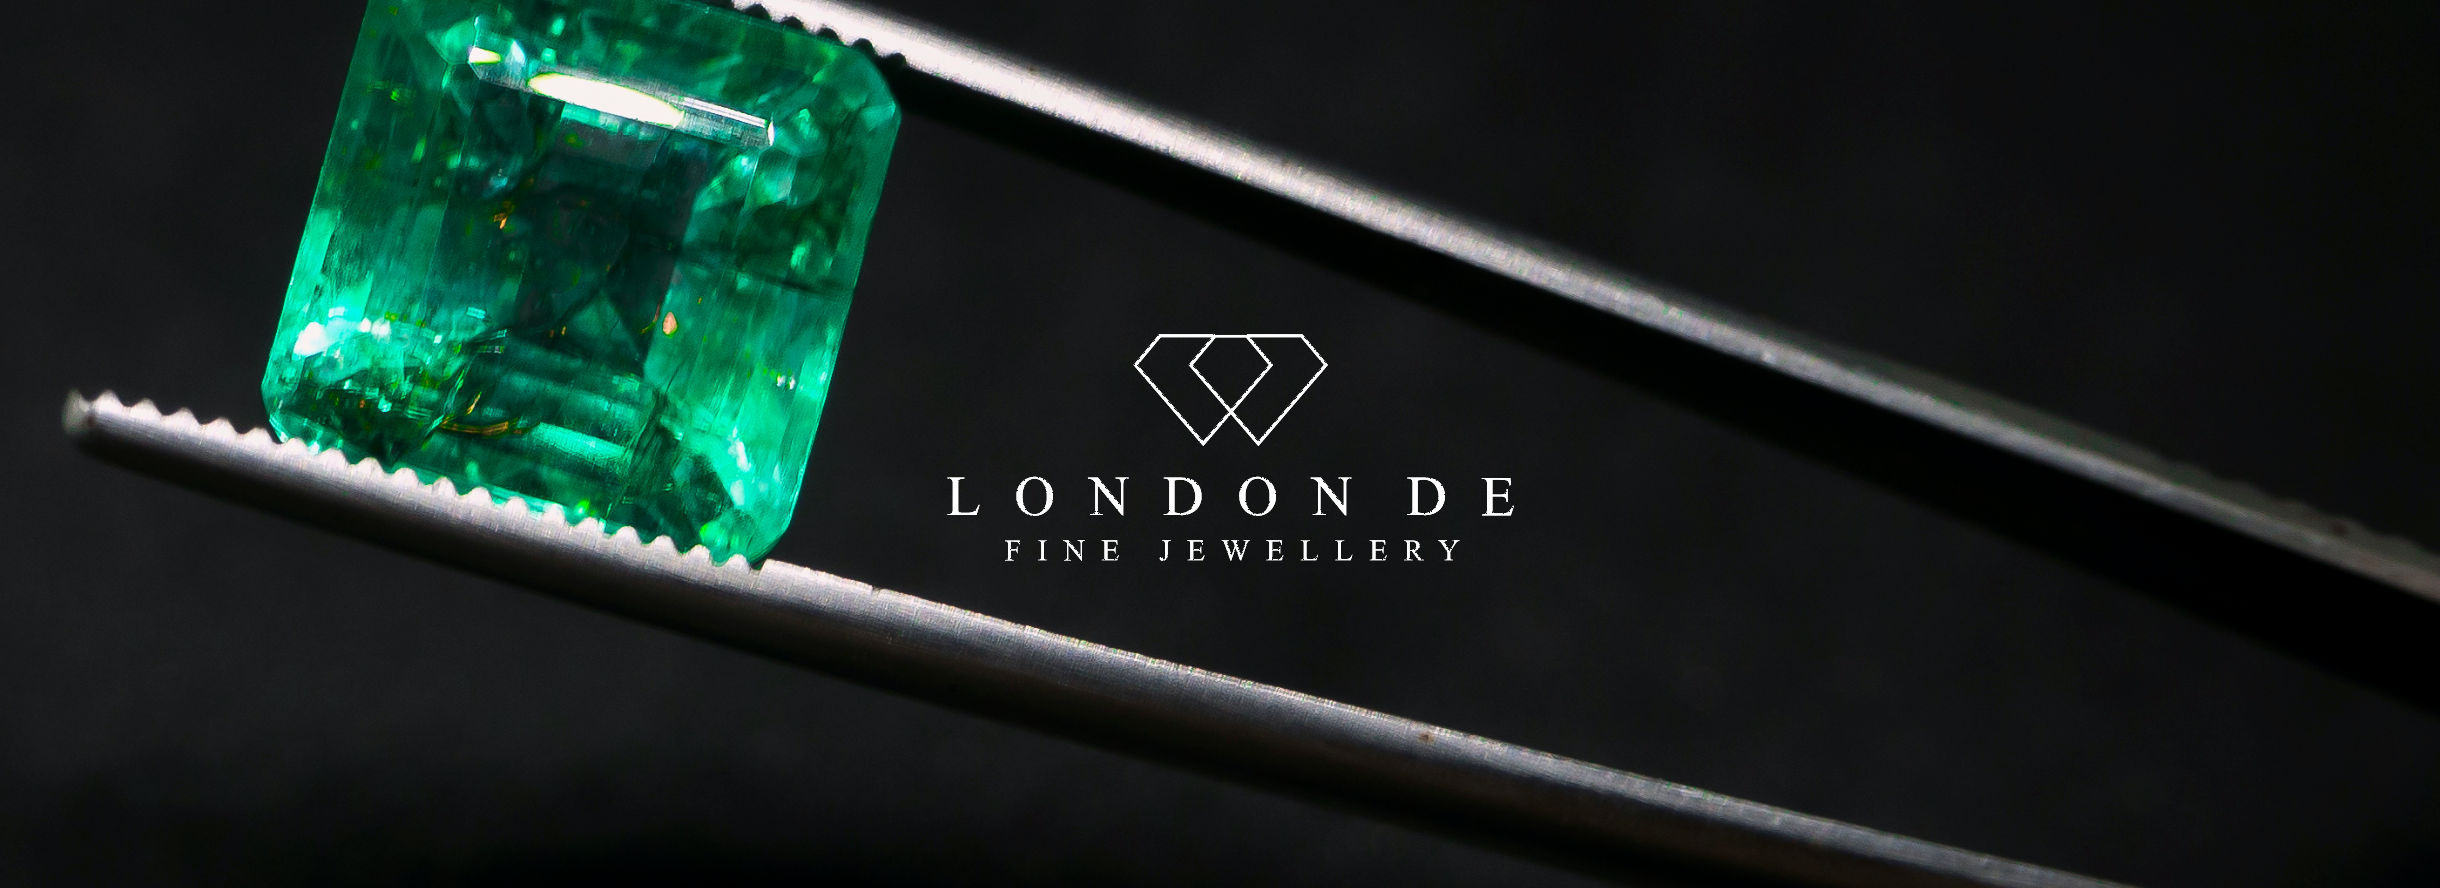 London DE - Digital Design Case Study